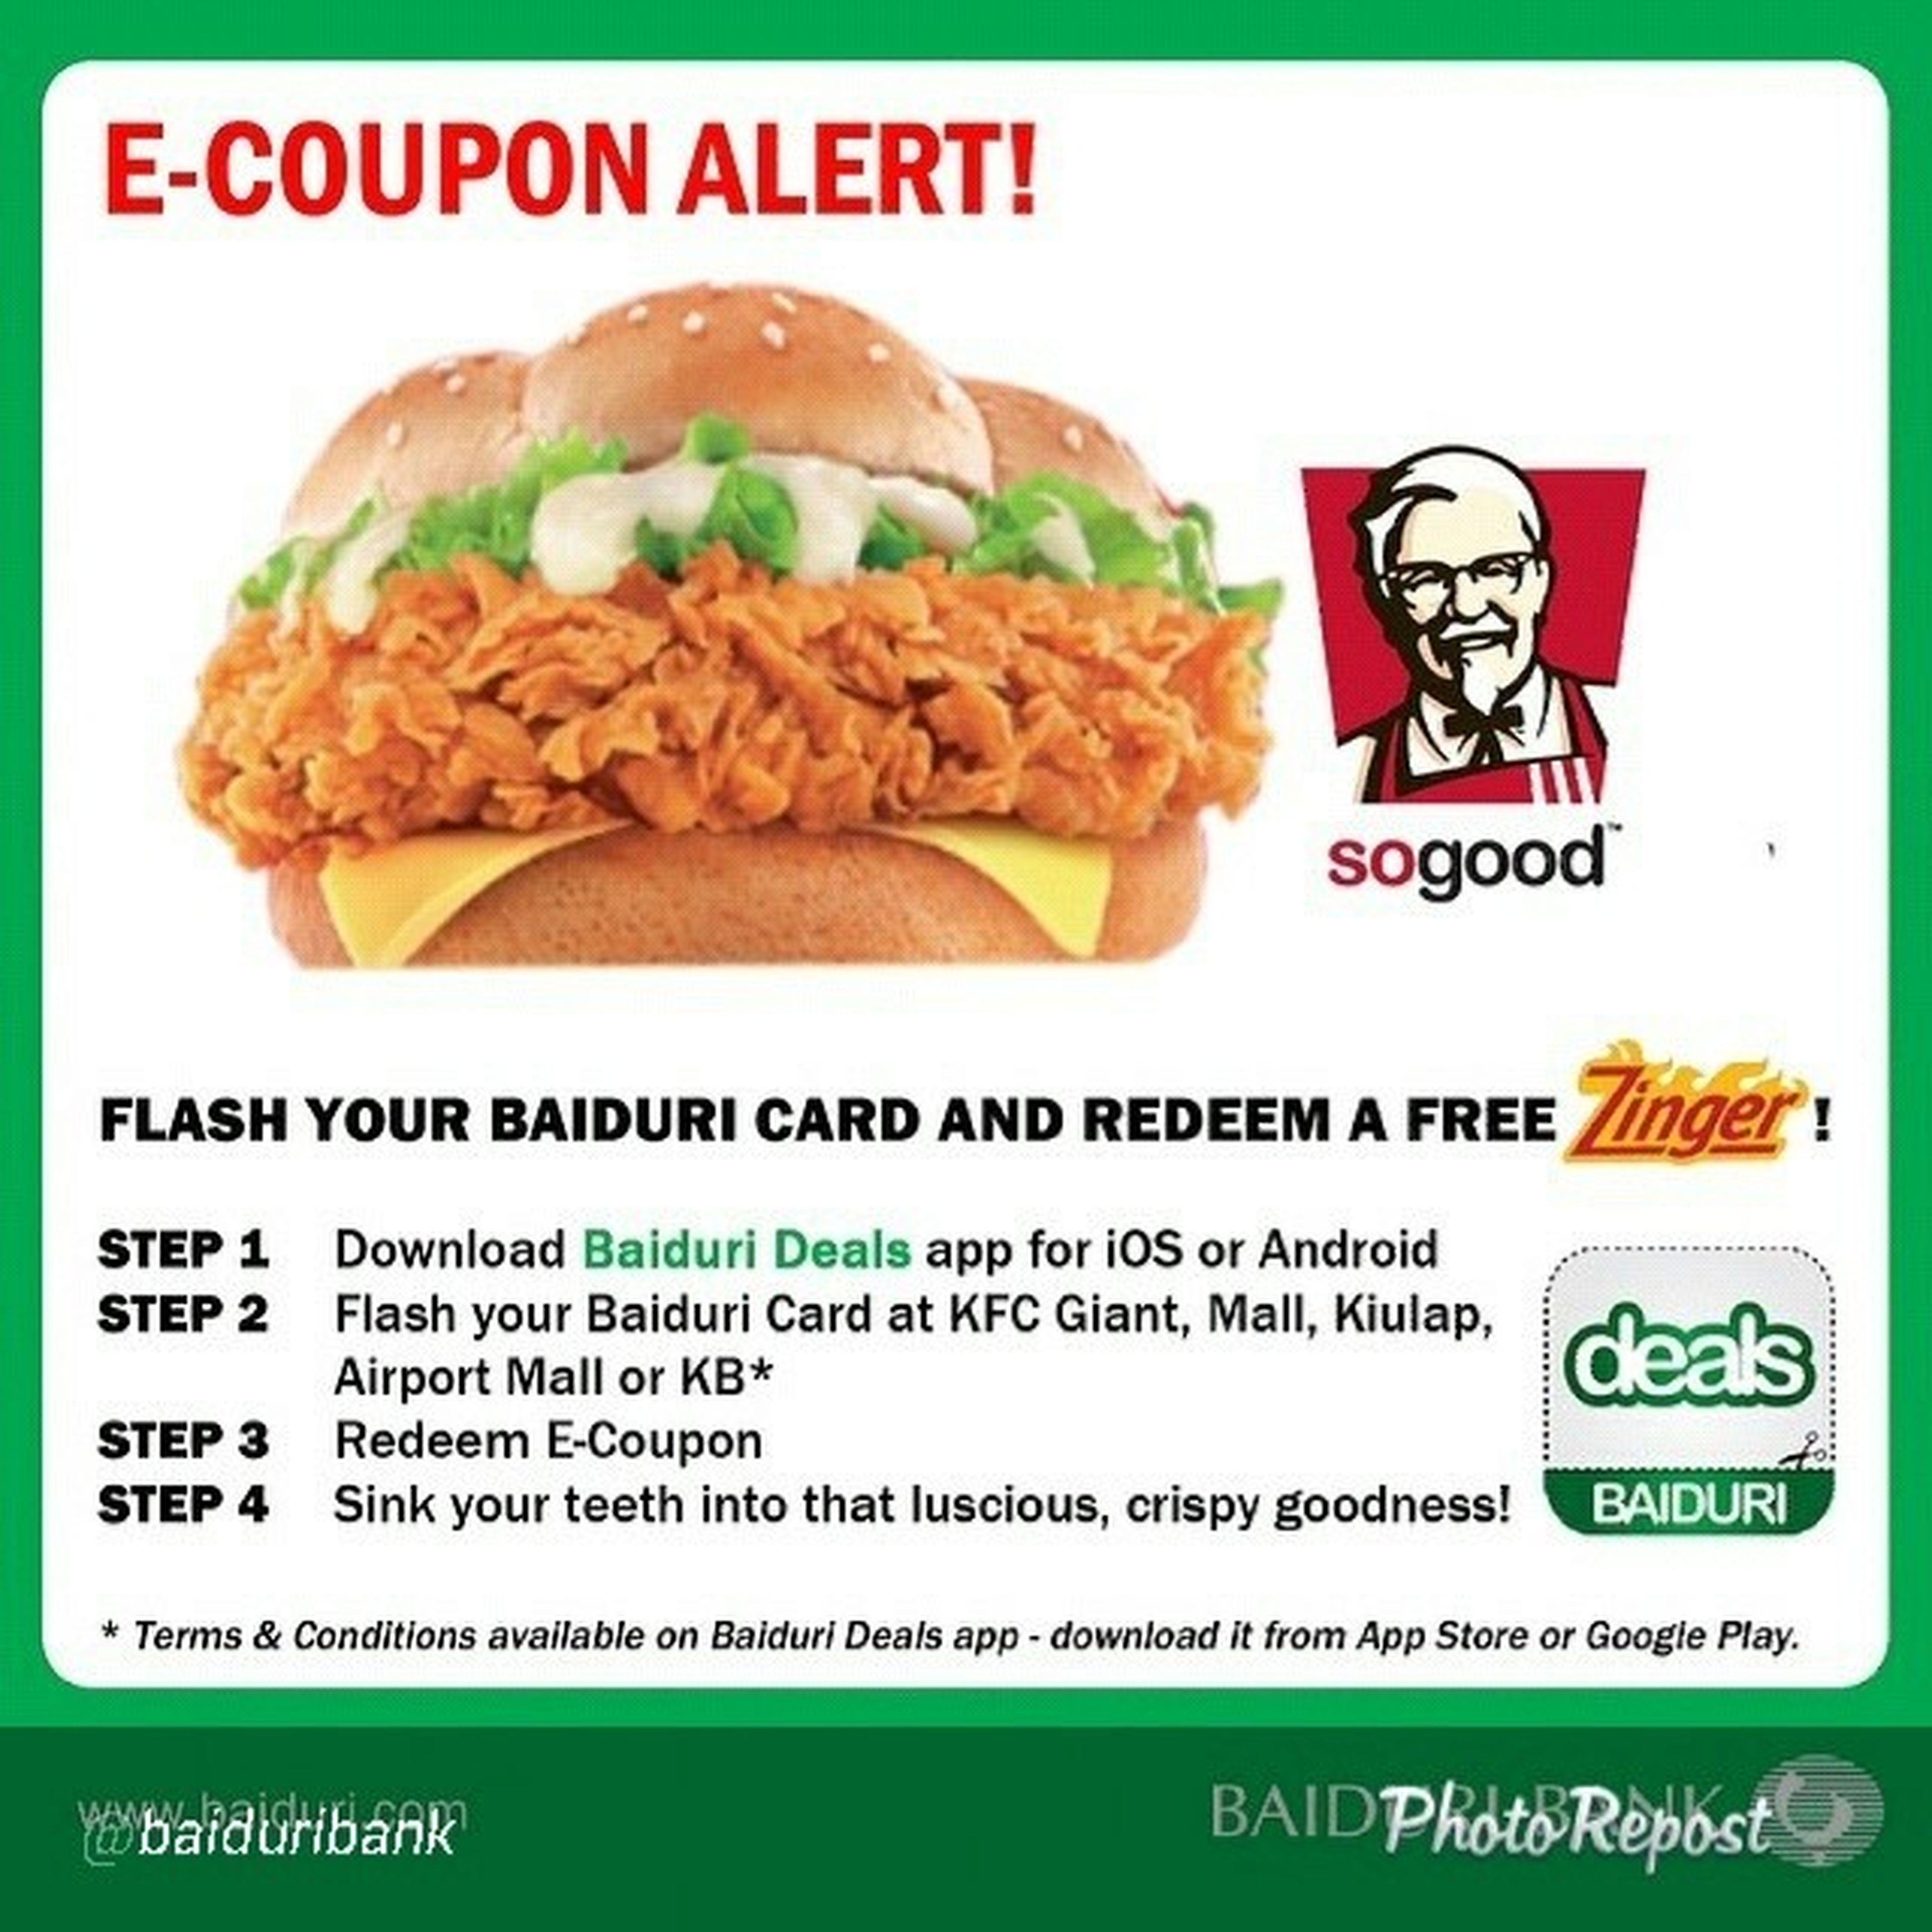 """By @baiduribank """"Get your Baiduri Debit, Credit or Prepaid Cards ready cause it's a FLASH DEAL! Starting tomorrow! Redeem a FREE ZINGER with any purchase from KFC Giant, The Mall, Airport Mall, Kiulap or KB when you FLASH your Baiduri Card!!! Baiduribank Baidurideals Baiduriecoupon """" via @PhotoRepost_app"""